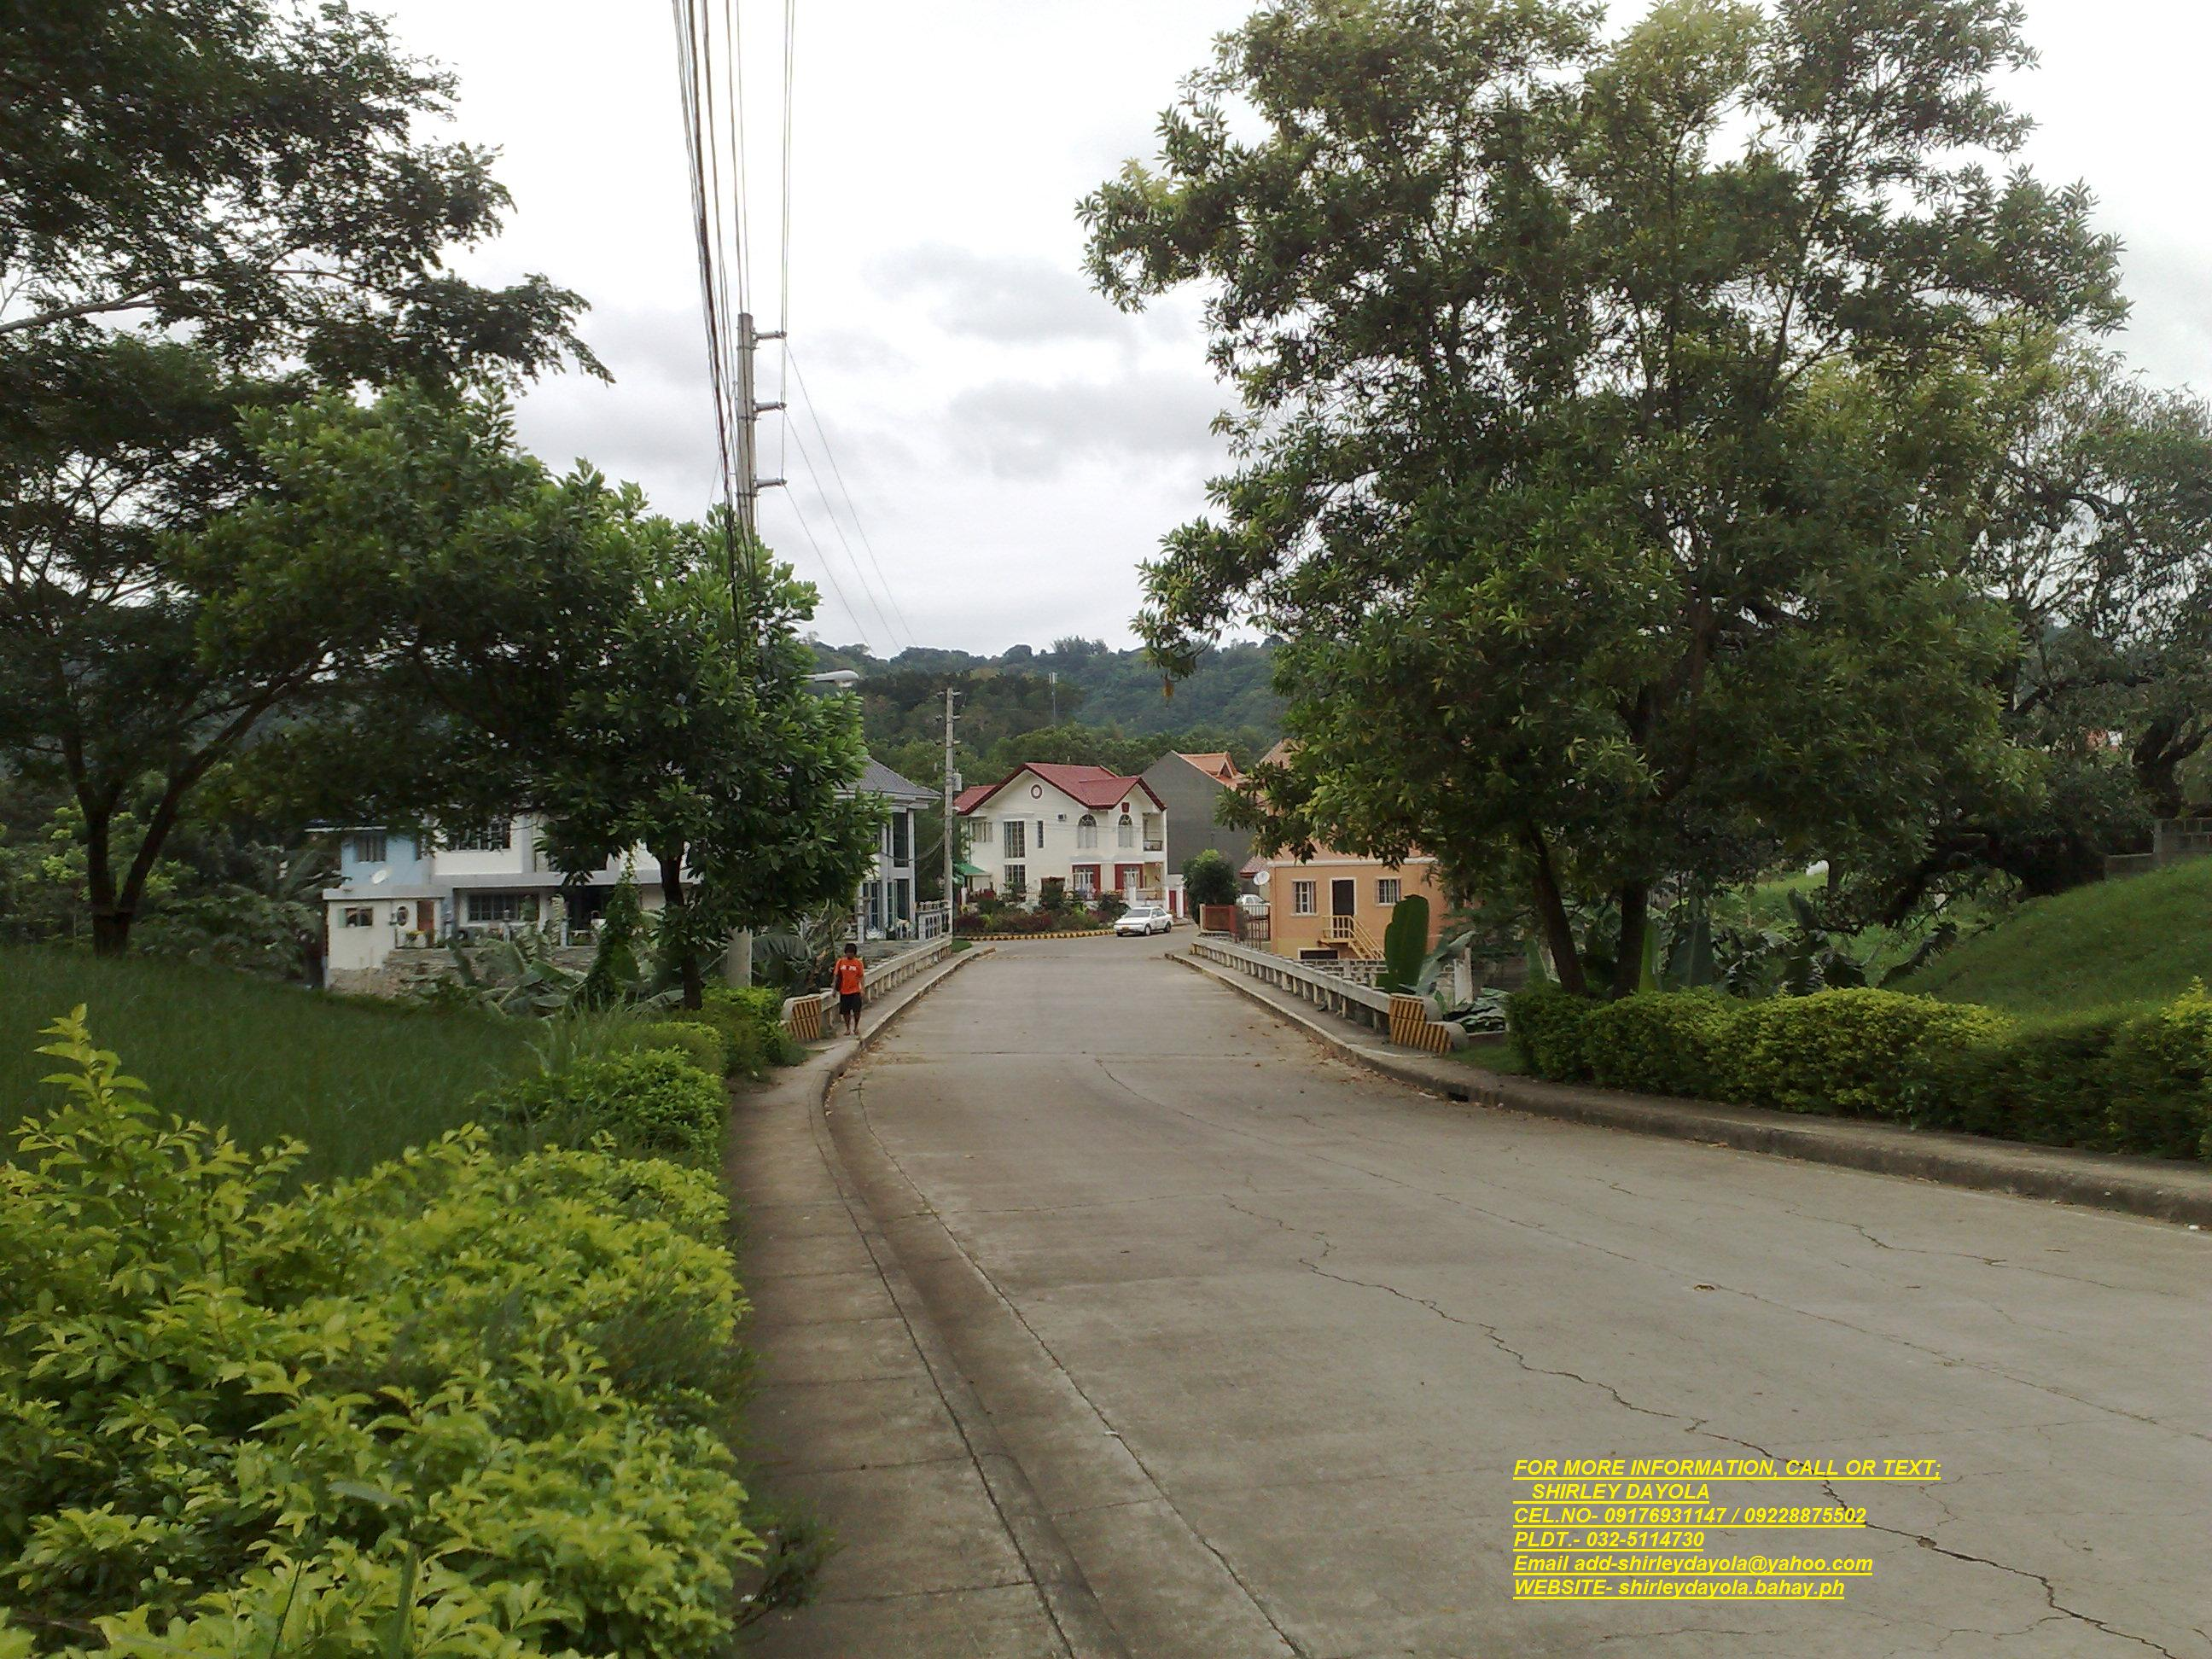 METROPOLIS CEBU SUBDIVISION is located in Barangay Pit-os and Pulang Bato, Cebu City, developed by STA. LUCIA REALTY AND DEVELOPMENT CORPORATION.